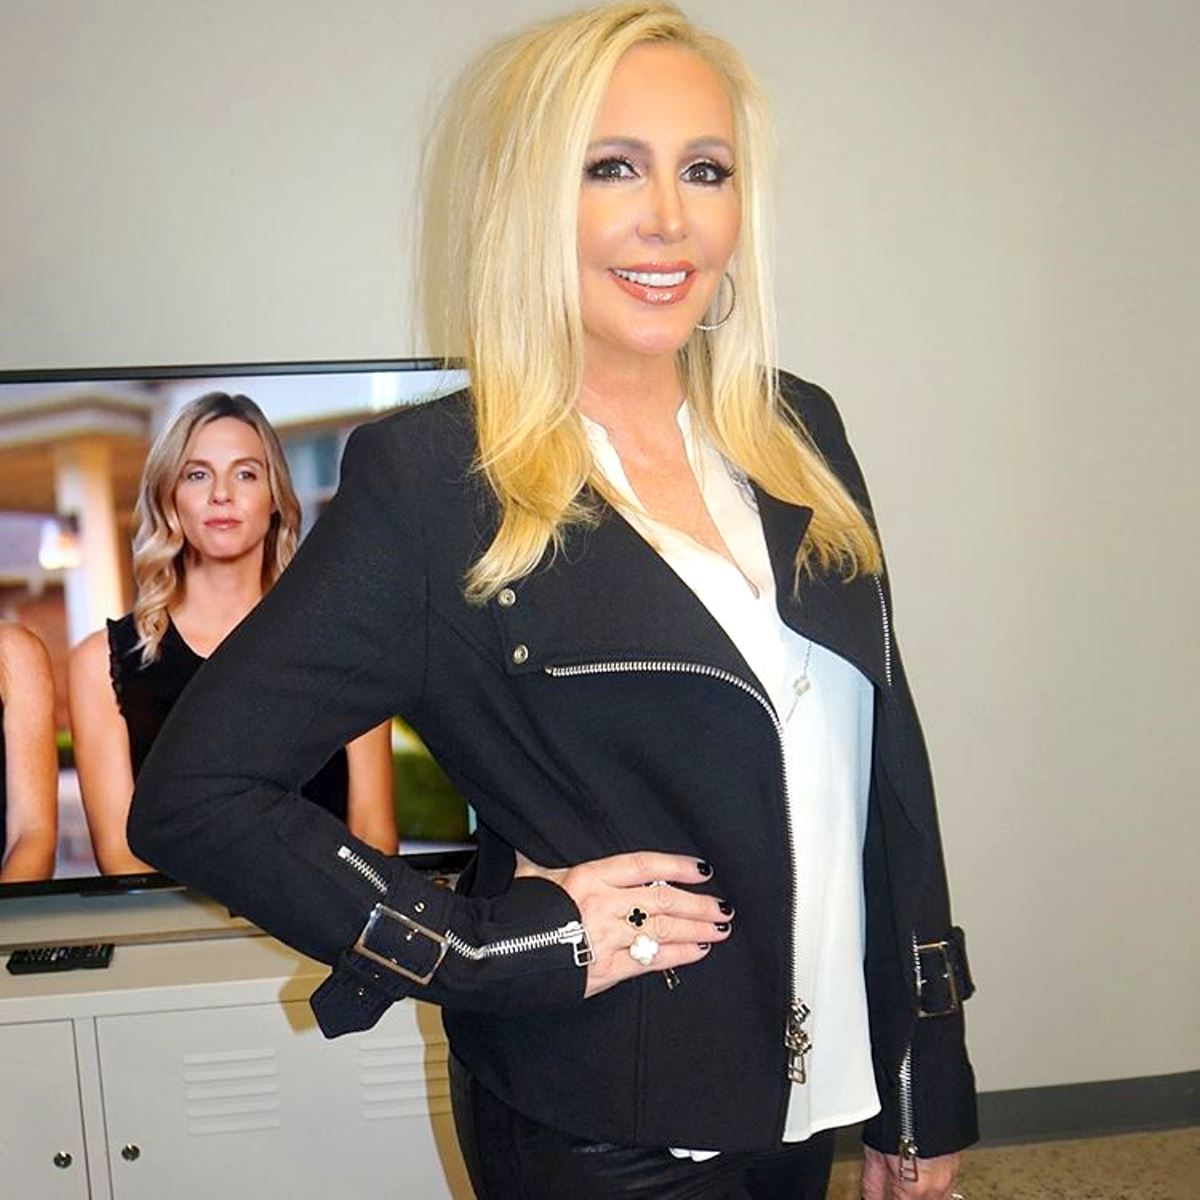 PHOTOS - RHOC's Shannon Beador Shows Off 15-Pound Weight Loss!